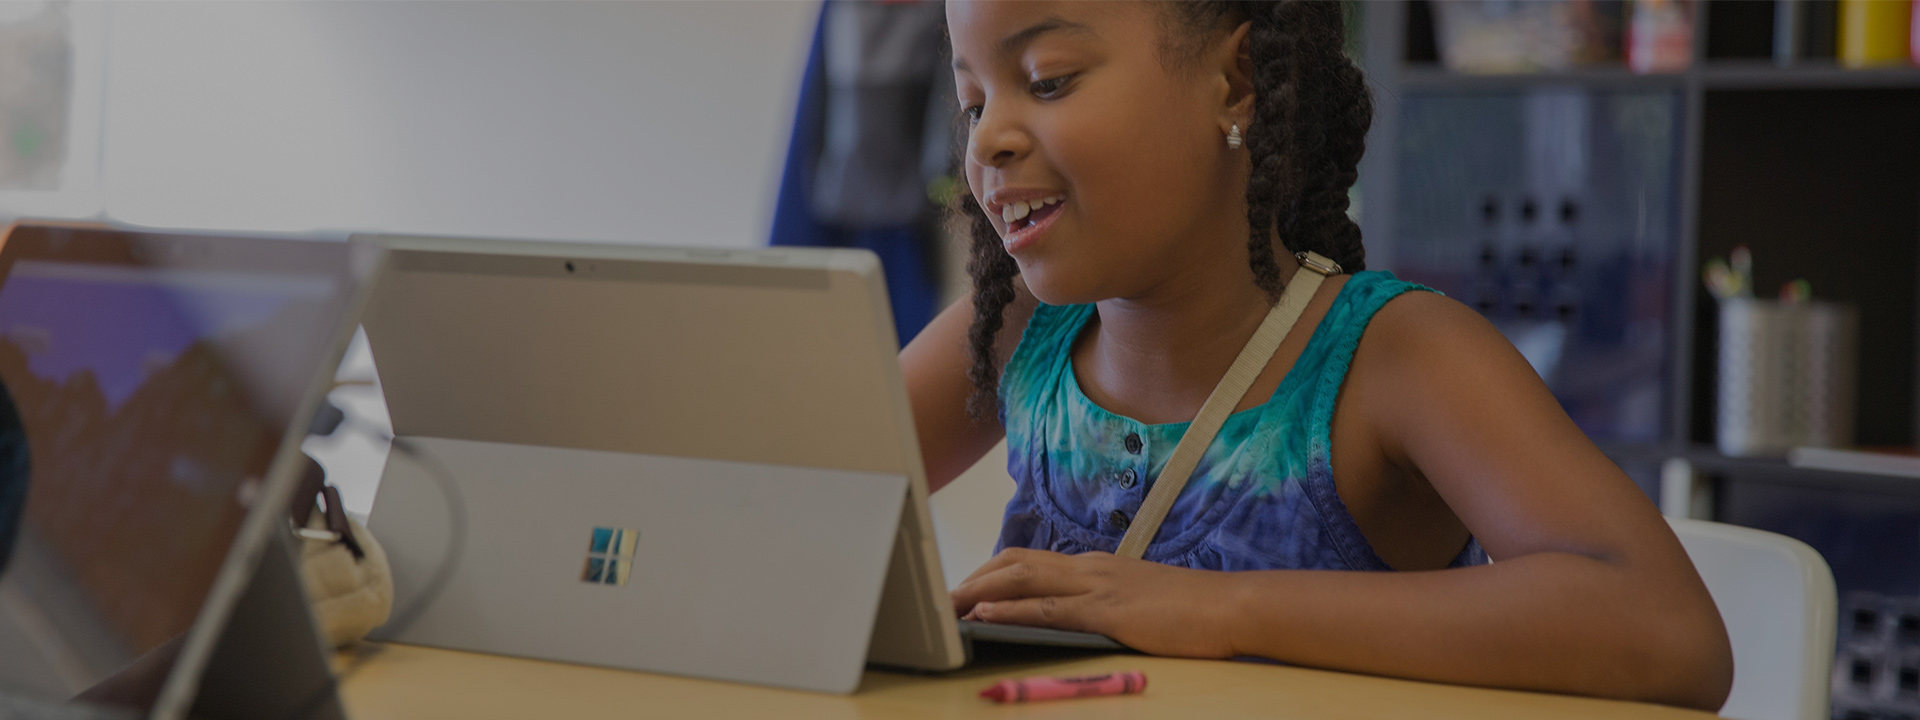 Lifestyle photo of a student at her Microsoft surface tablet playing the game, smiling.